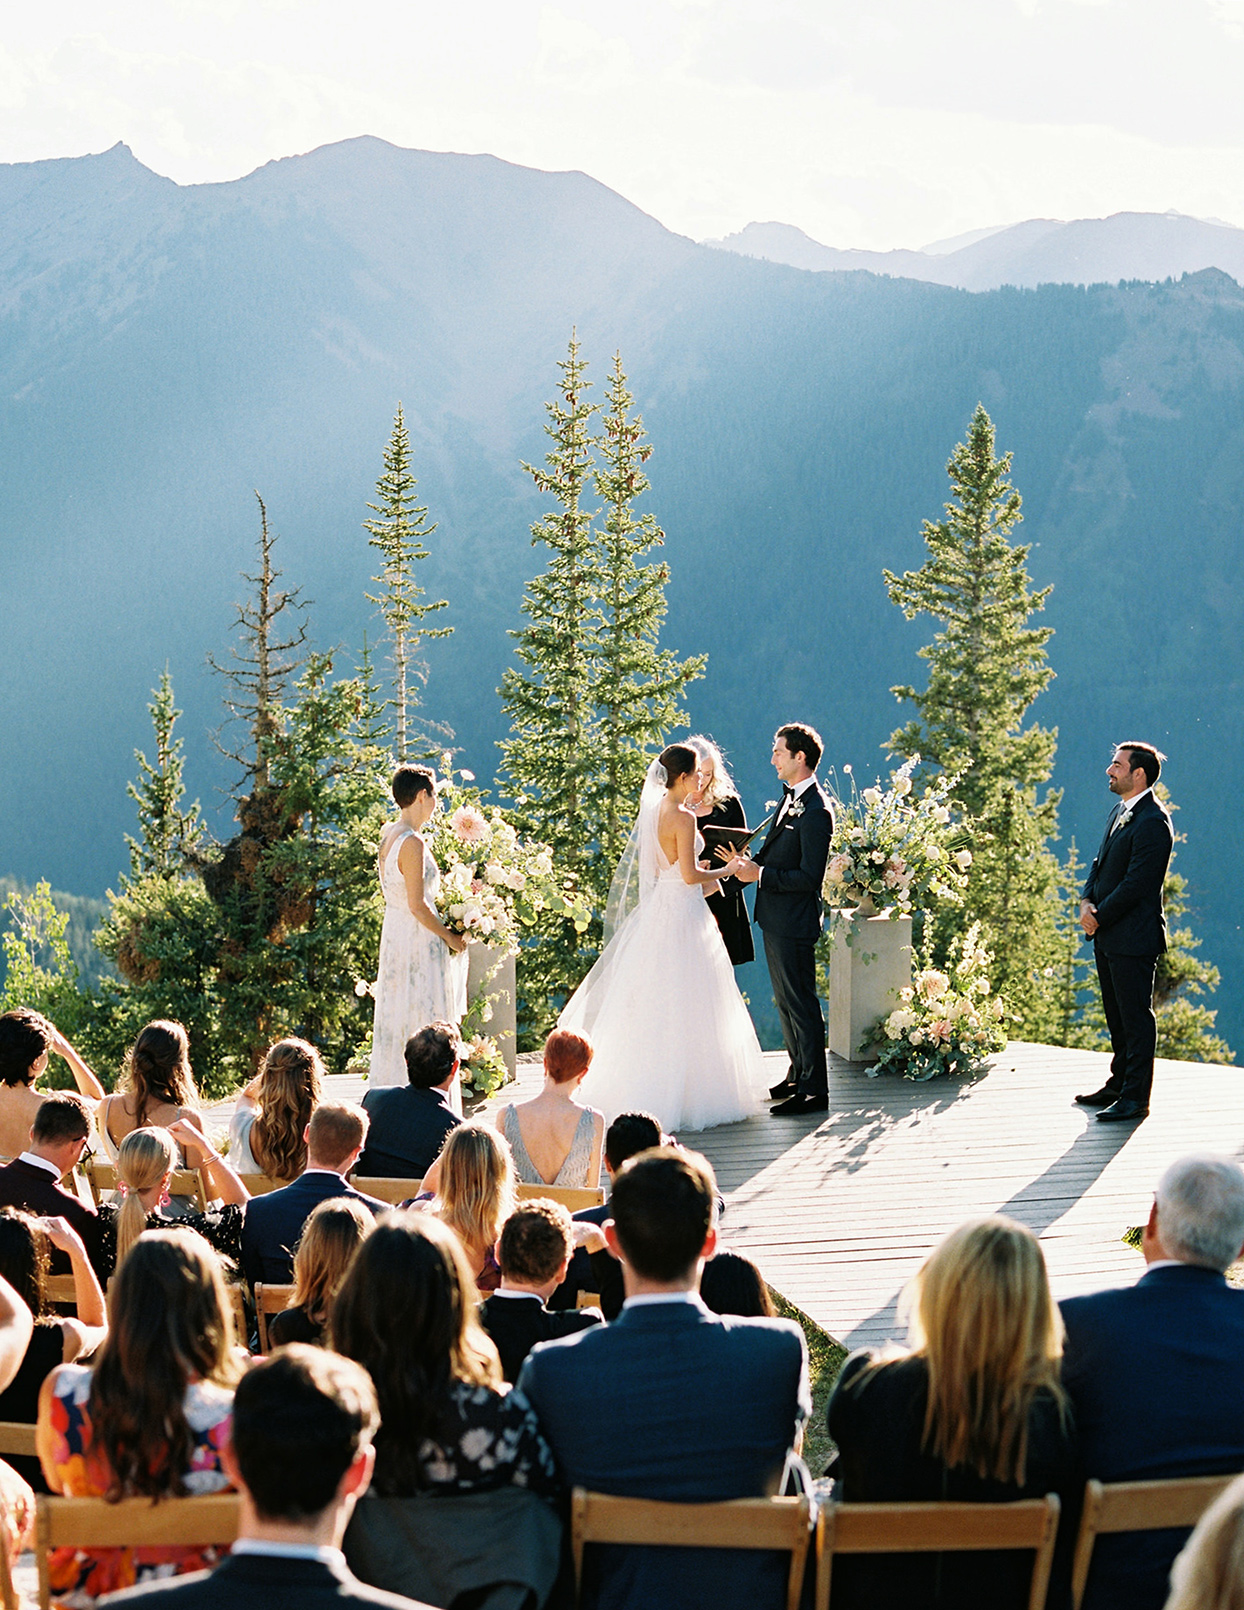 kimmie mike wedding ceremony with mountain view